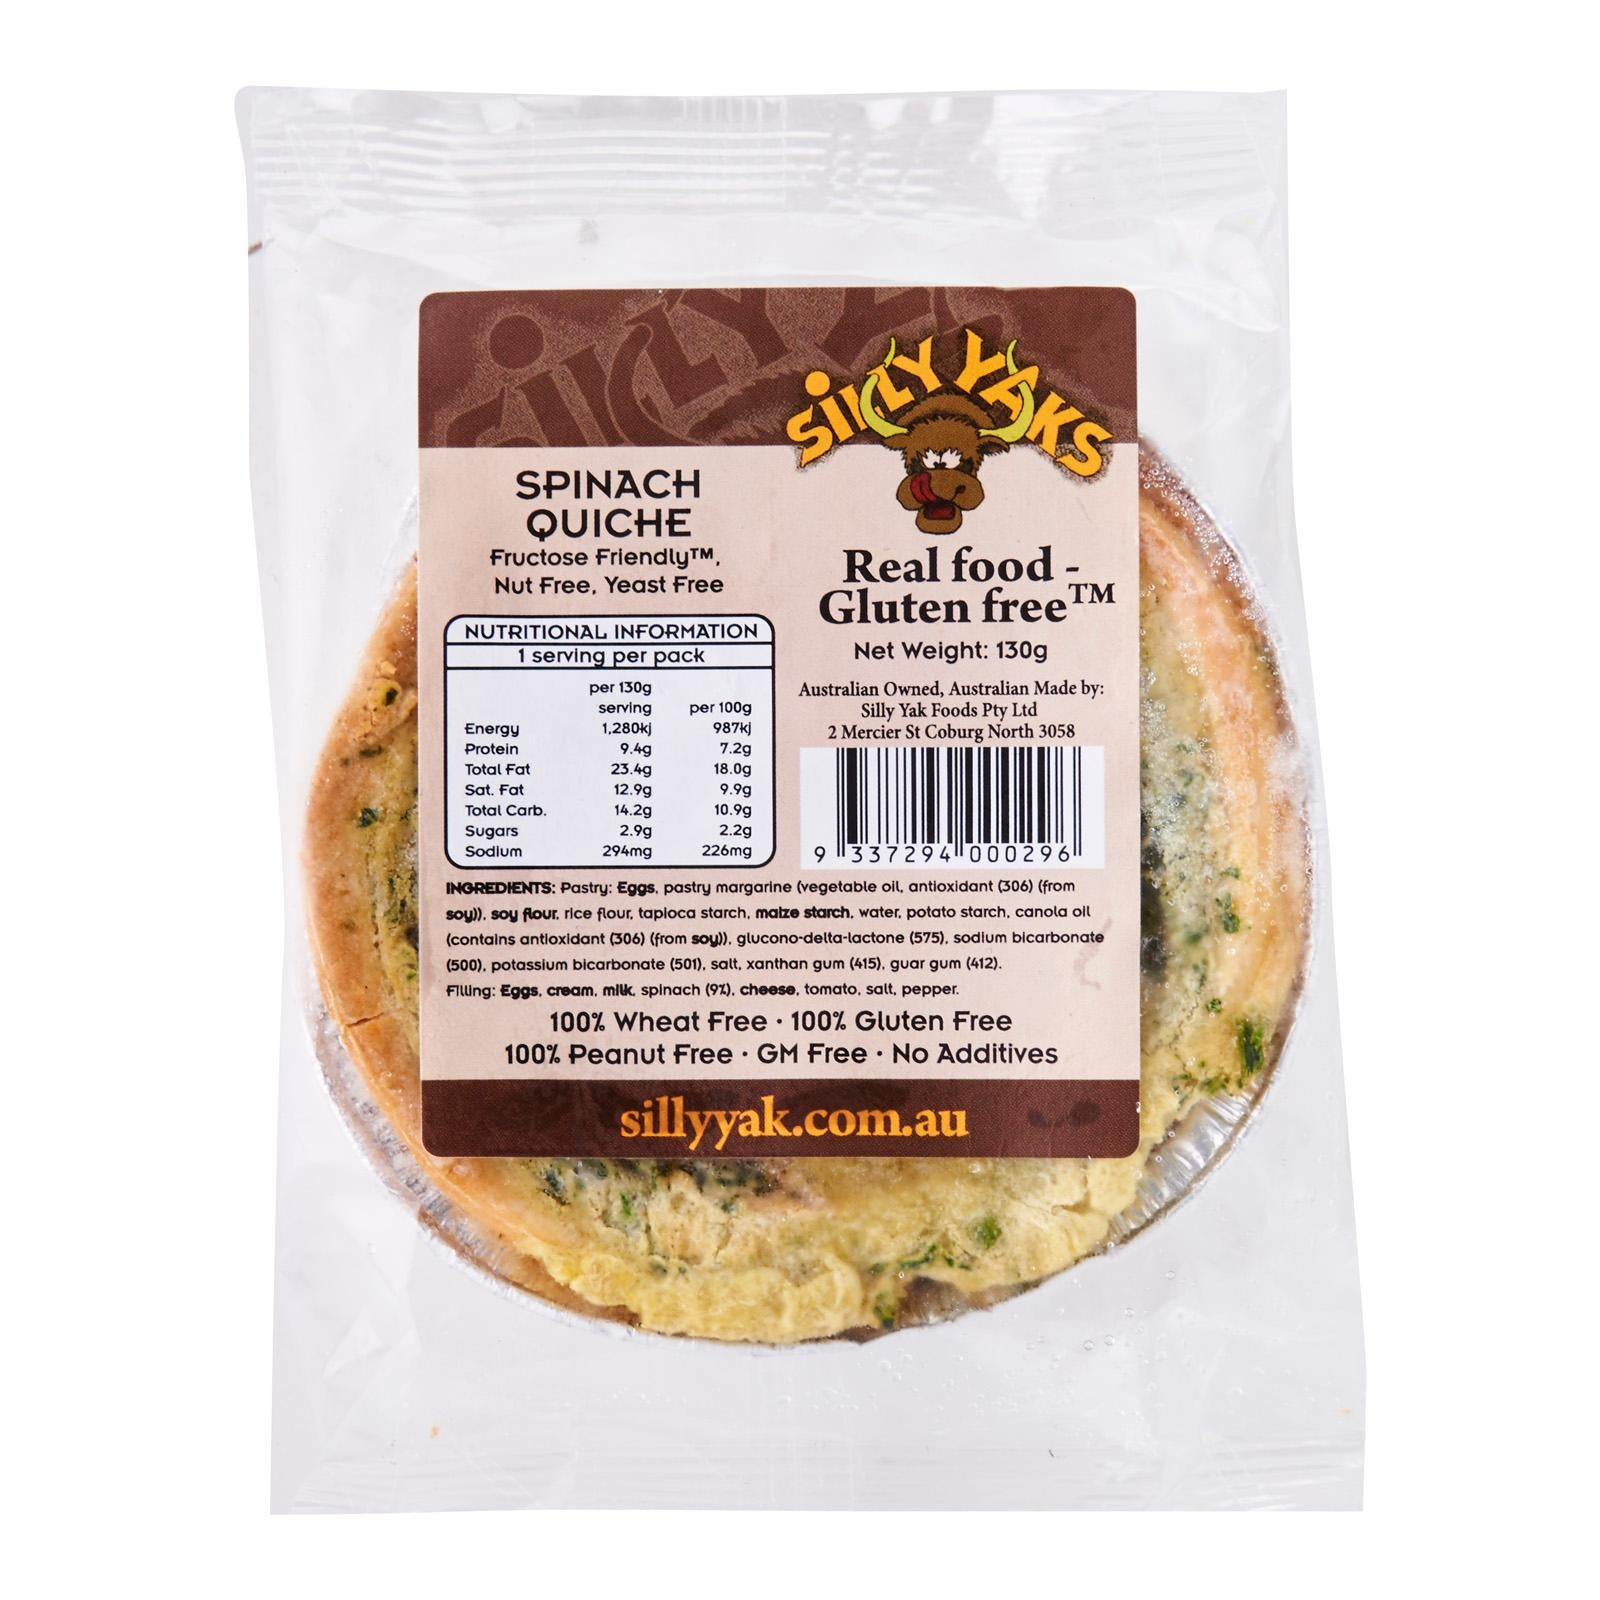 Spinach Quiche (130g)